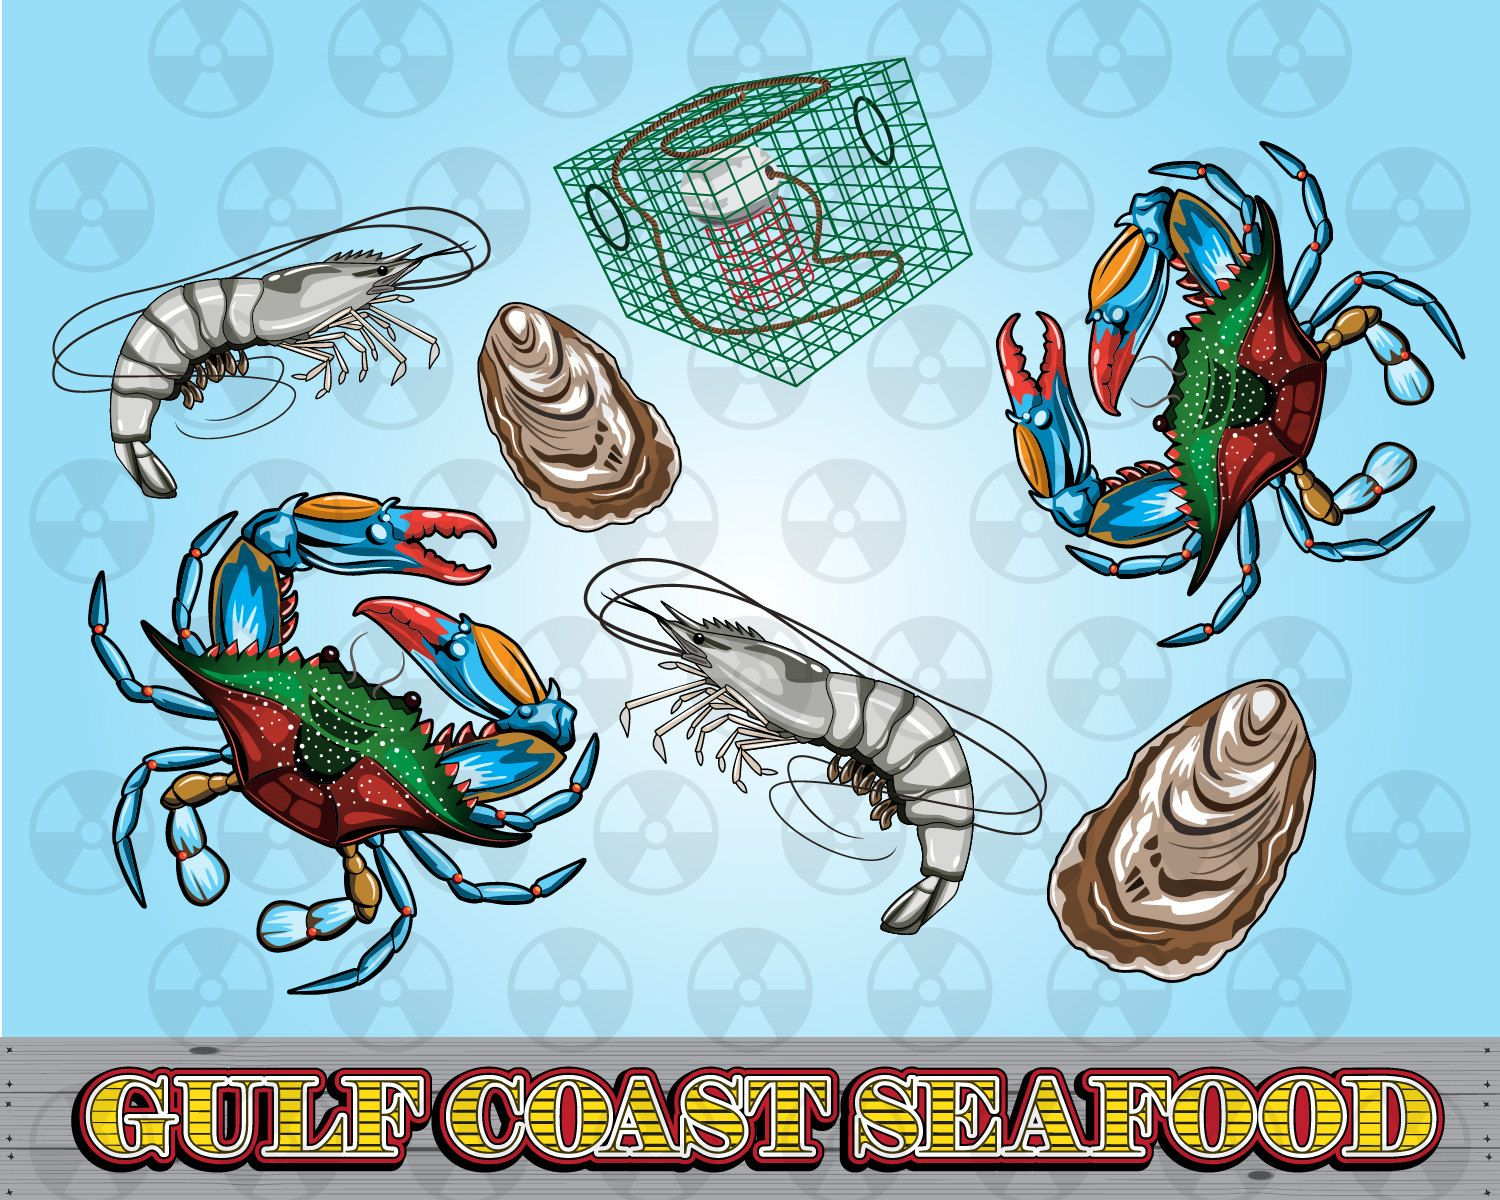 hight resolution of louisiana vector clipart gulf coast clipart blue crab digital cartoon seafood clipart scrapbook making instant download by digitalmeltdown on etsy